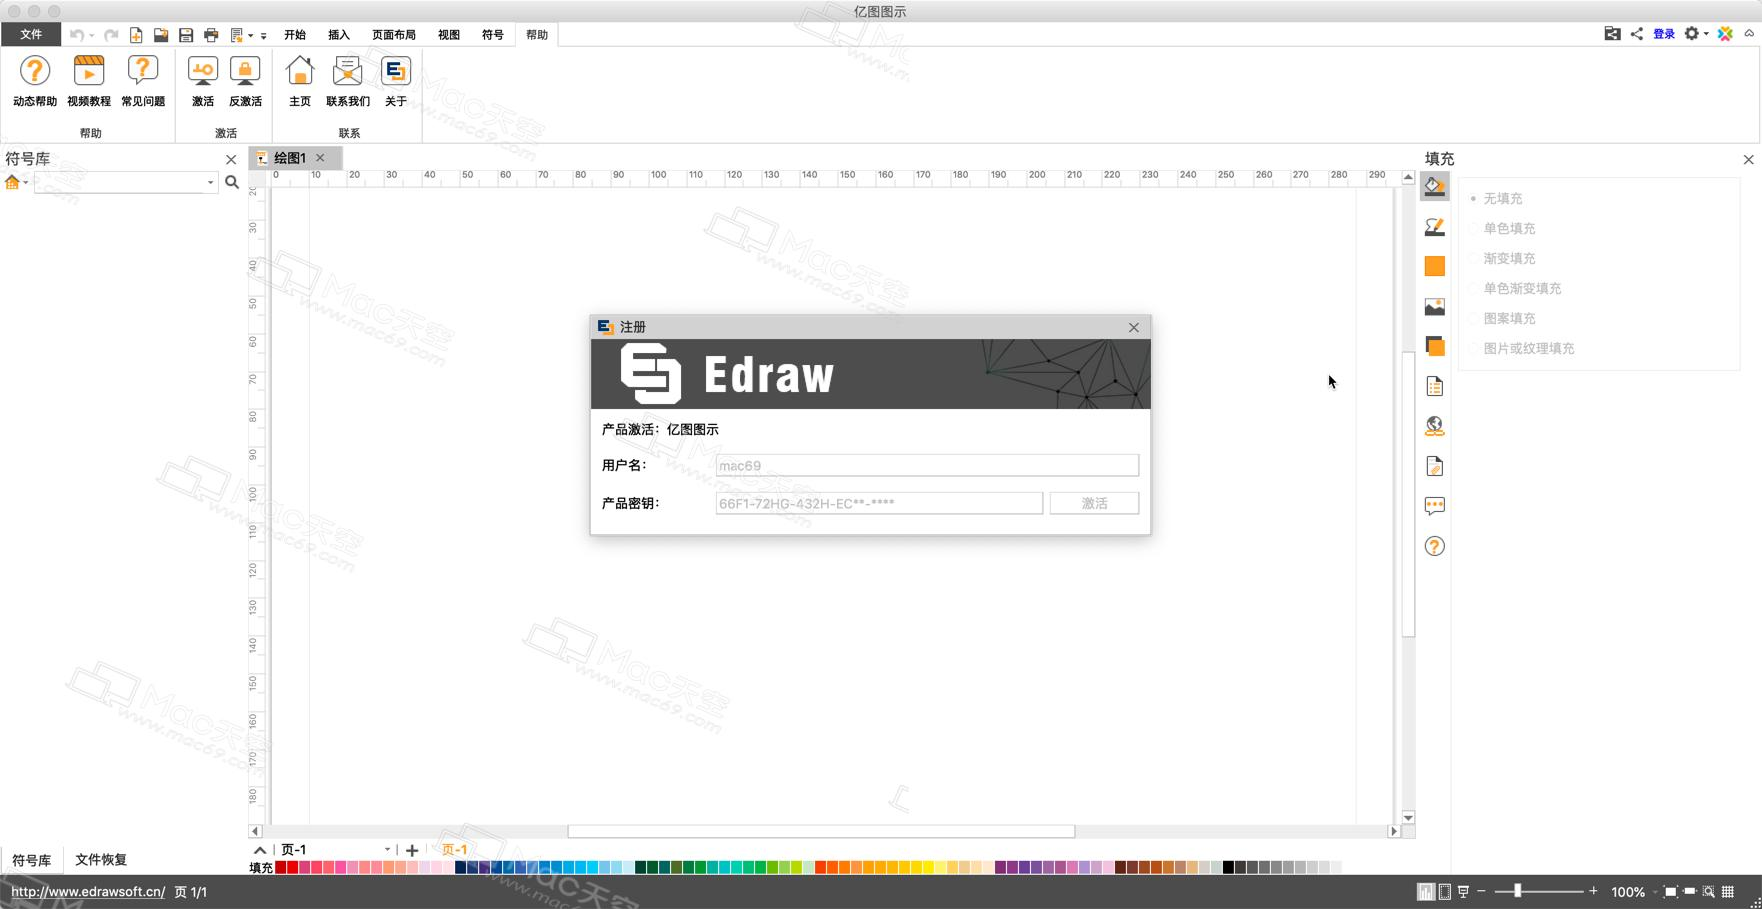 Edrawmax 9 For Mac Easy Mind Mapping Software Chinese Activation Edition Programmer Sought